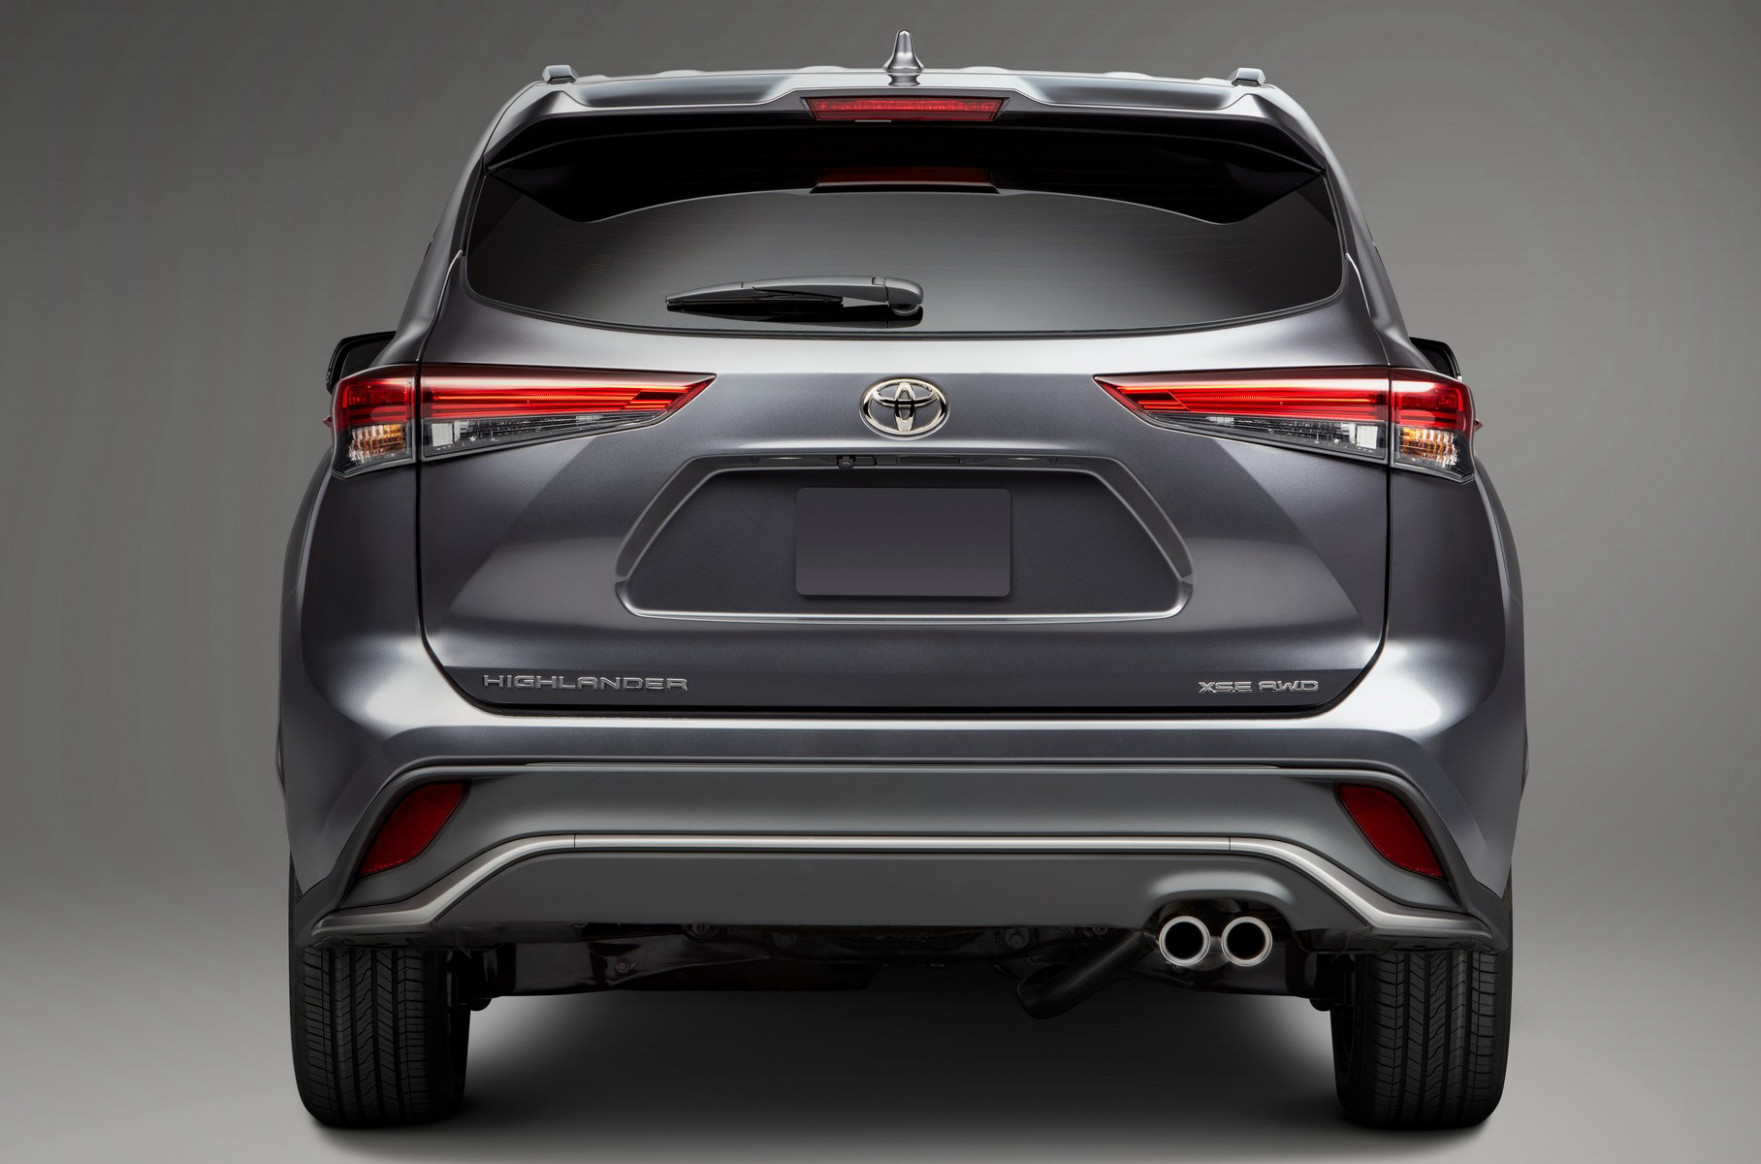 Performance Toyota Highlander 2022